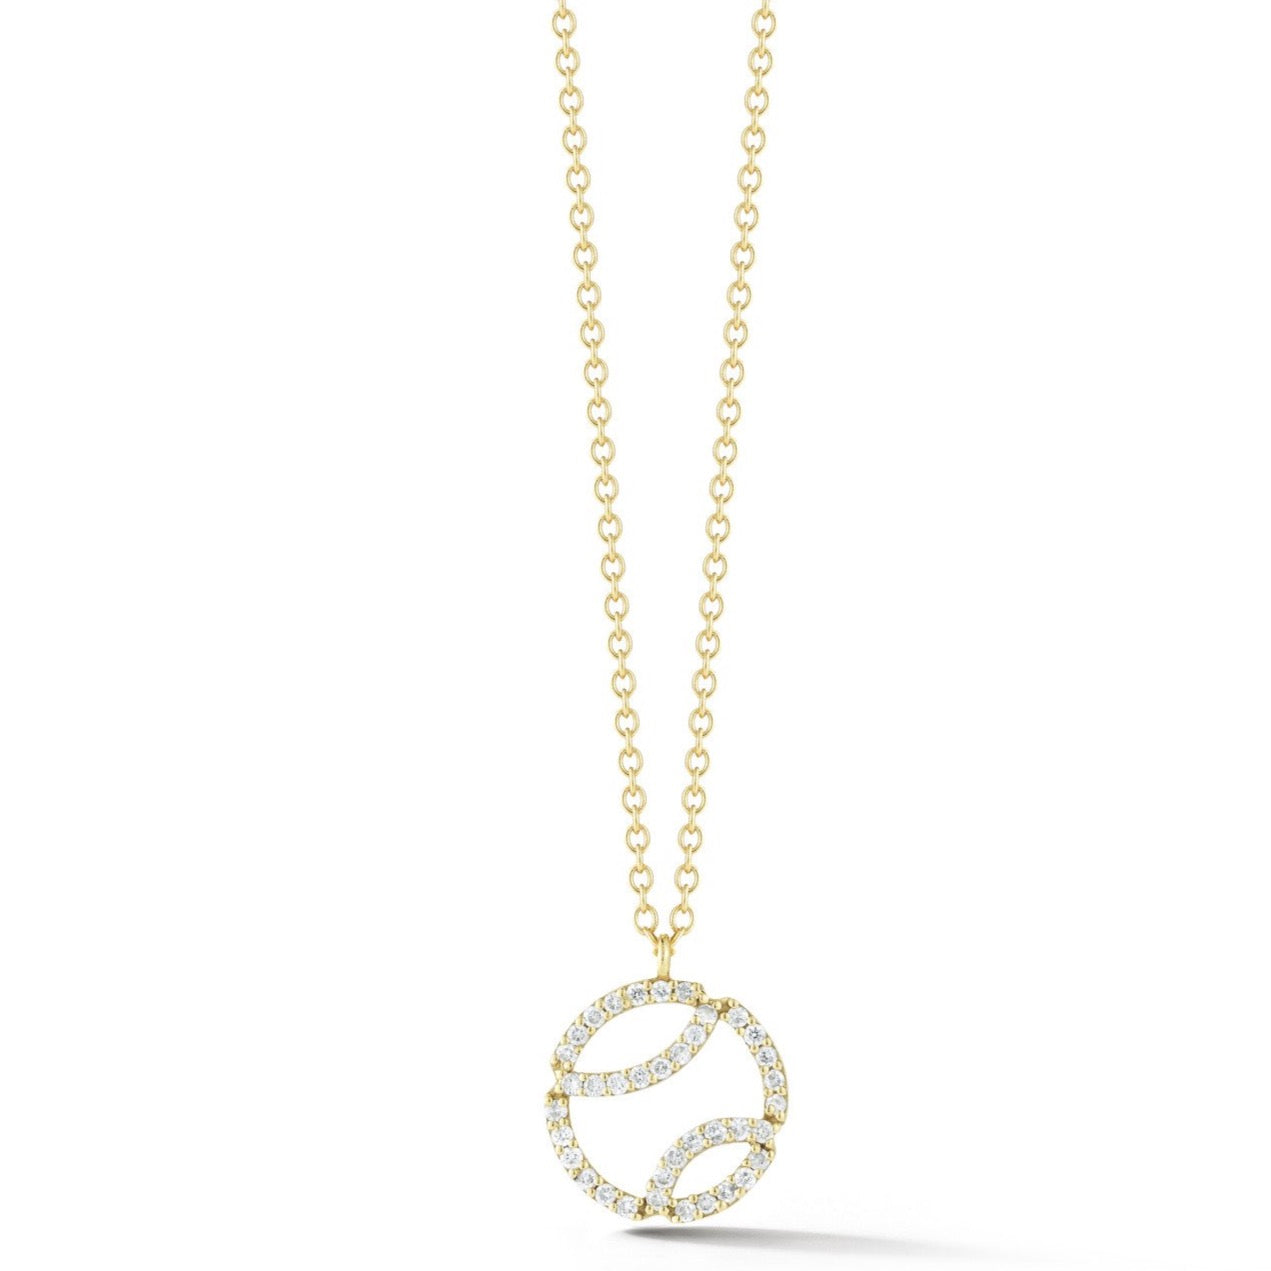 AF Jewelers - Small Tennis Ball Pendant Necklace with Diamonds and with Chain, 18k Yellow Gold